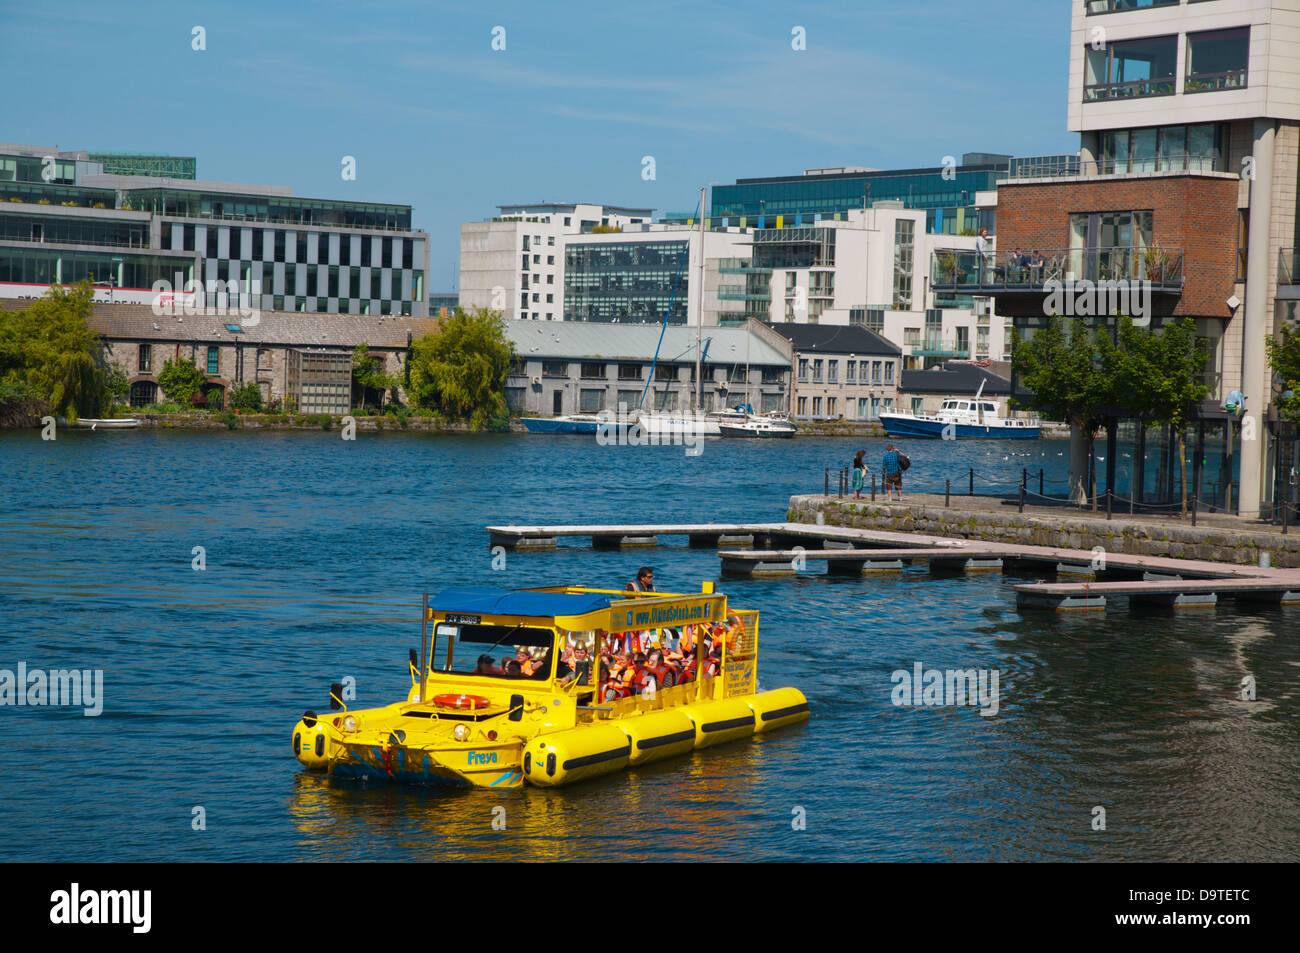 Amphibious Viking Splash Tour boat bus Grand Canal Docks in Docklands former harbour area central Dublin Ireland - Stock Image